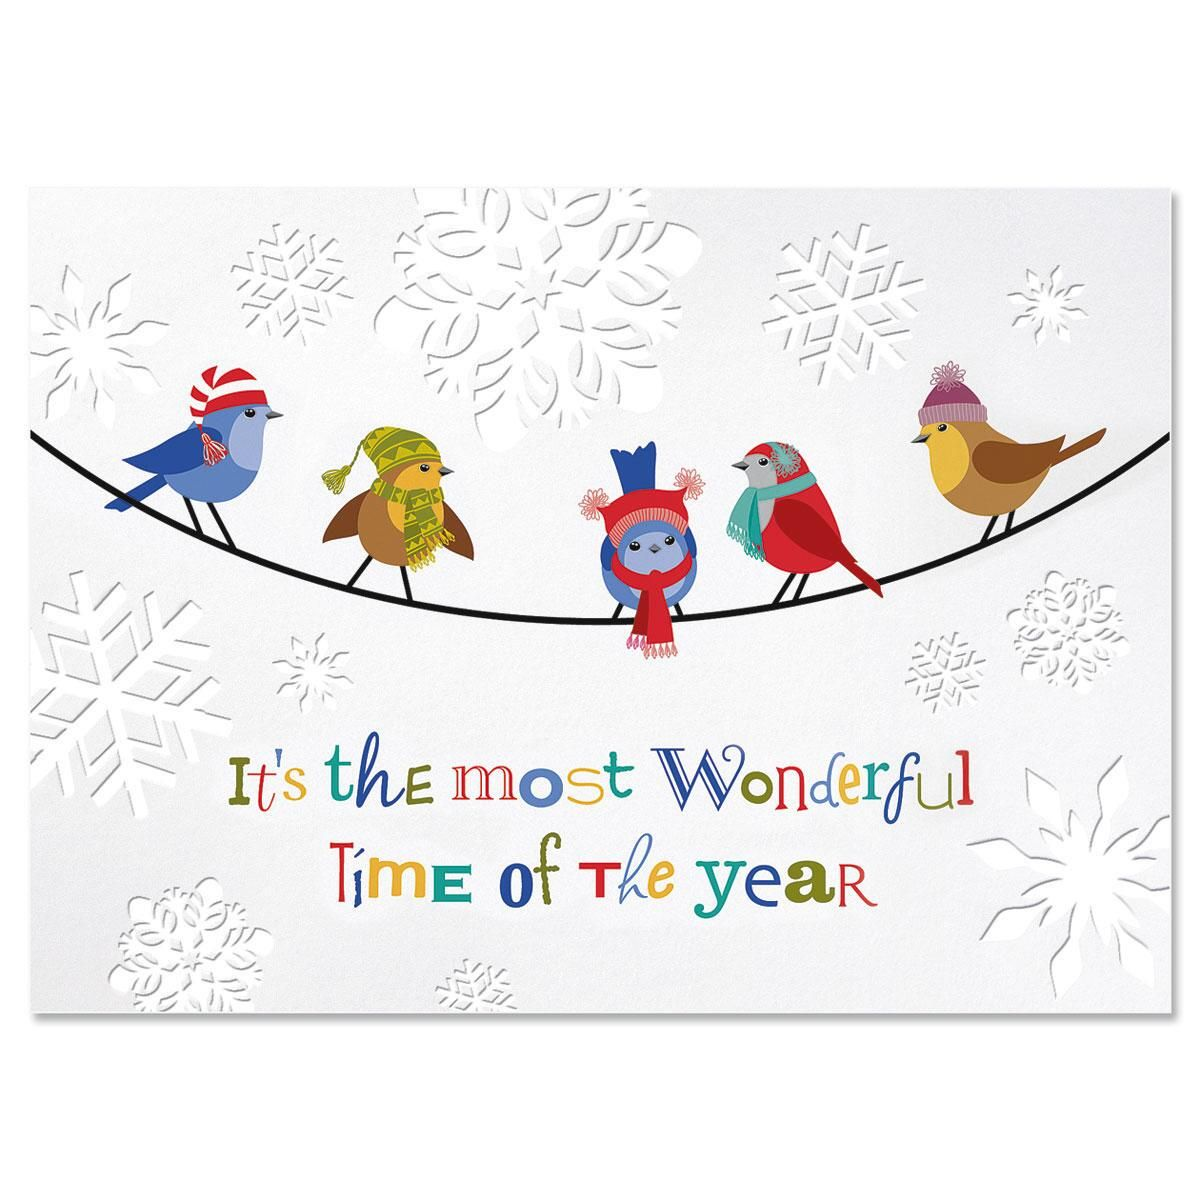 Snowflakes & Birds Nonpersonalized Deluxe Christmas Cards - Set of 56